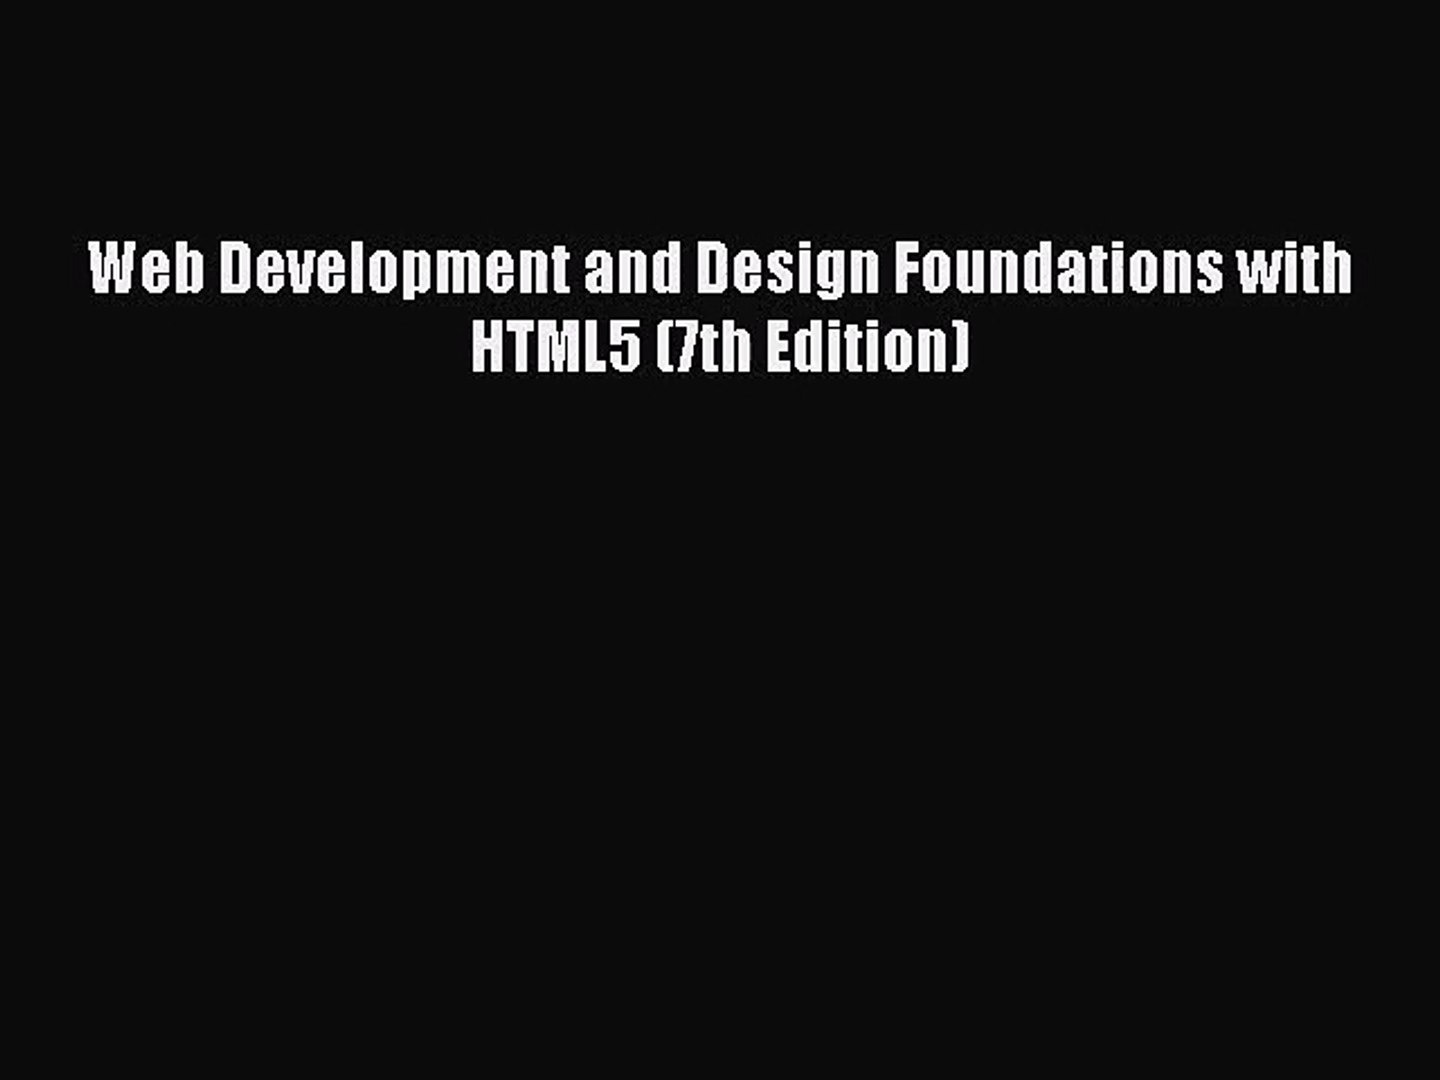 Pdf Download Web Development And Design Foundations With Html5 7th Edition Pdf Online Video Dailymotion